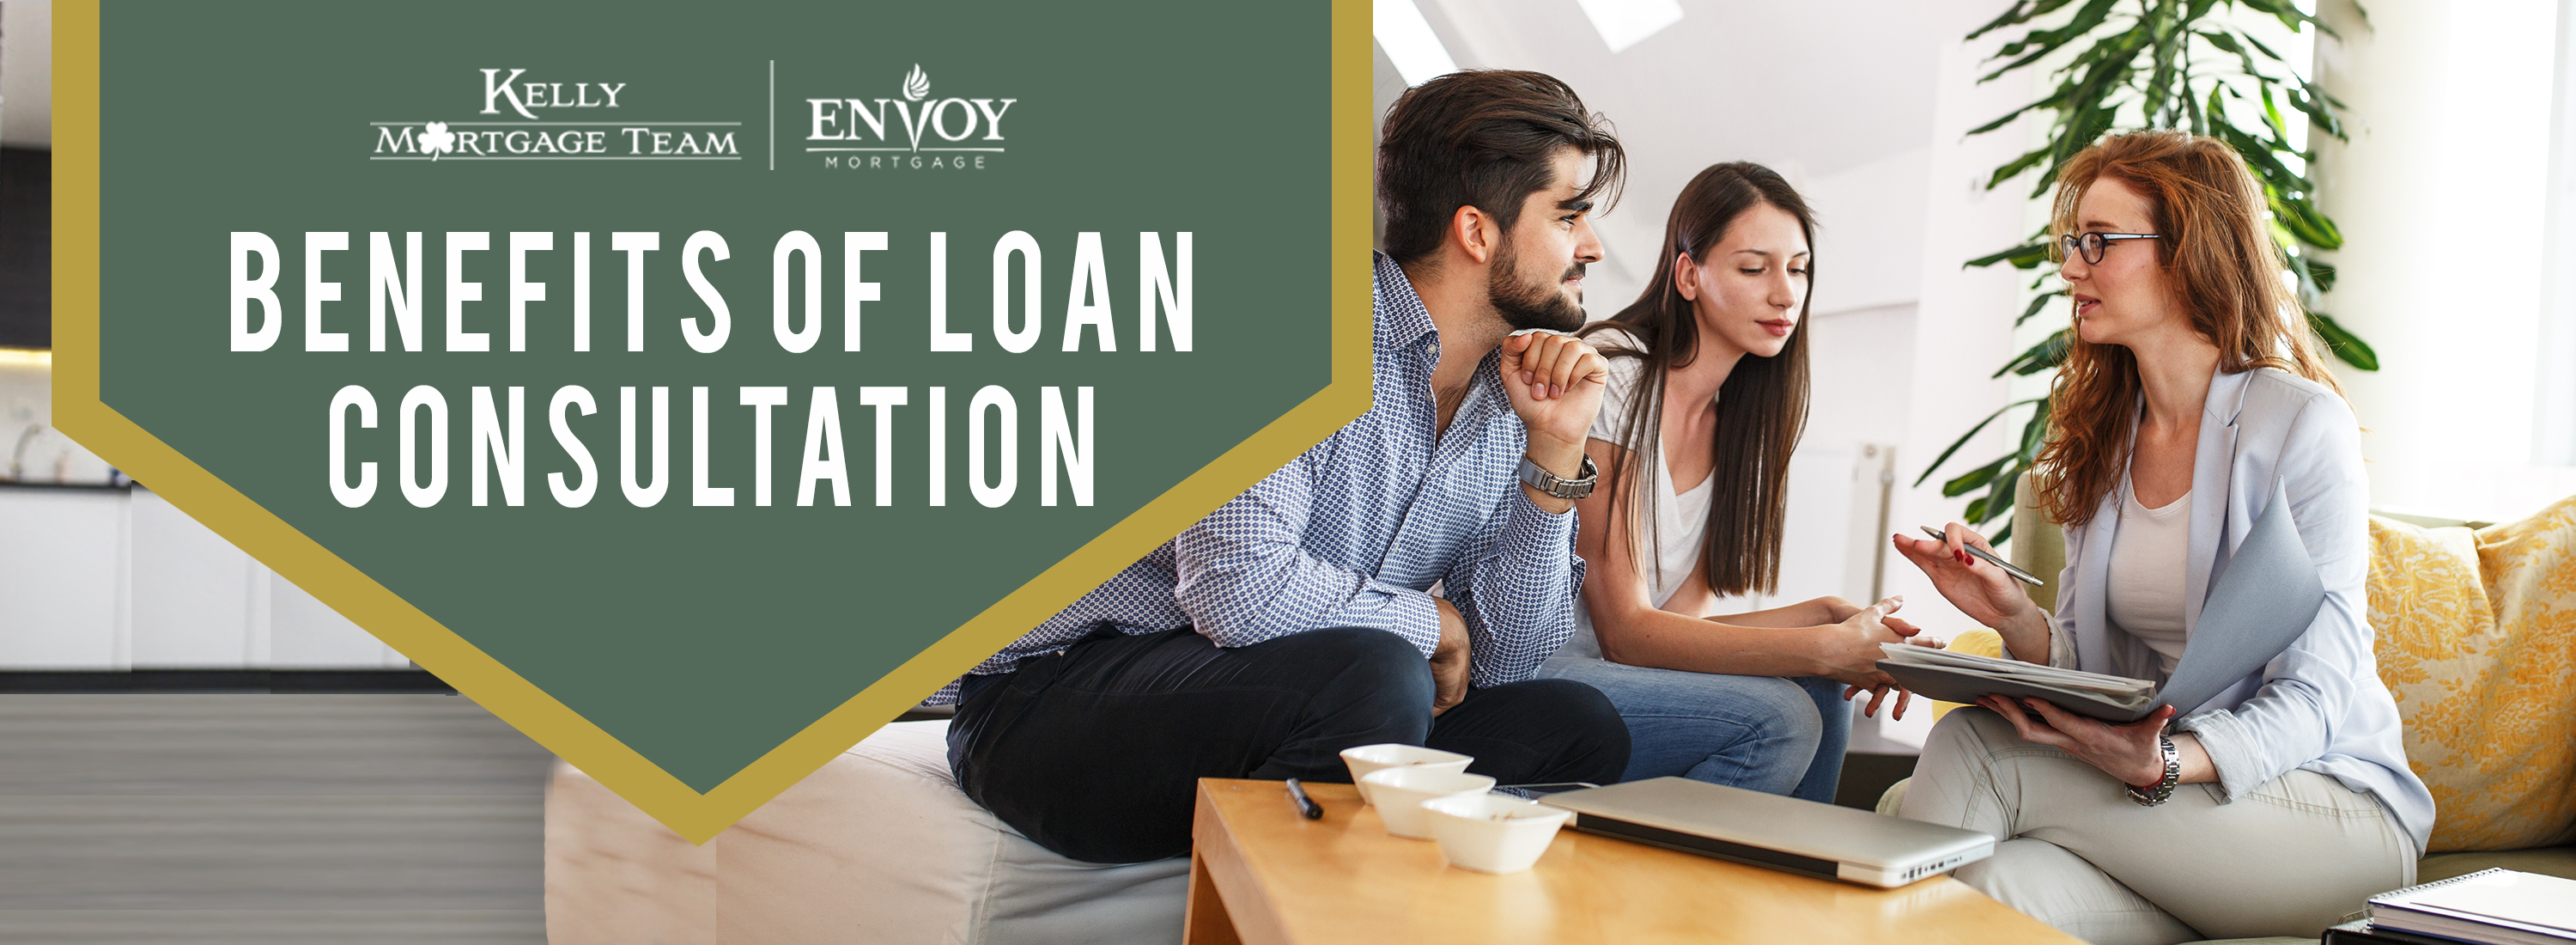 Benefits of Loan Consultation